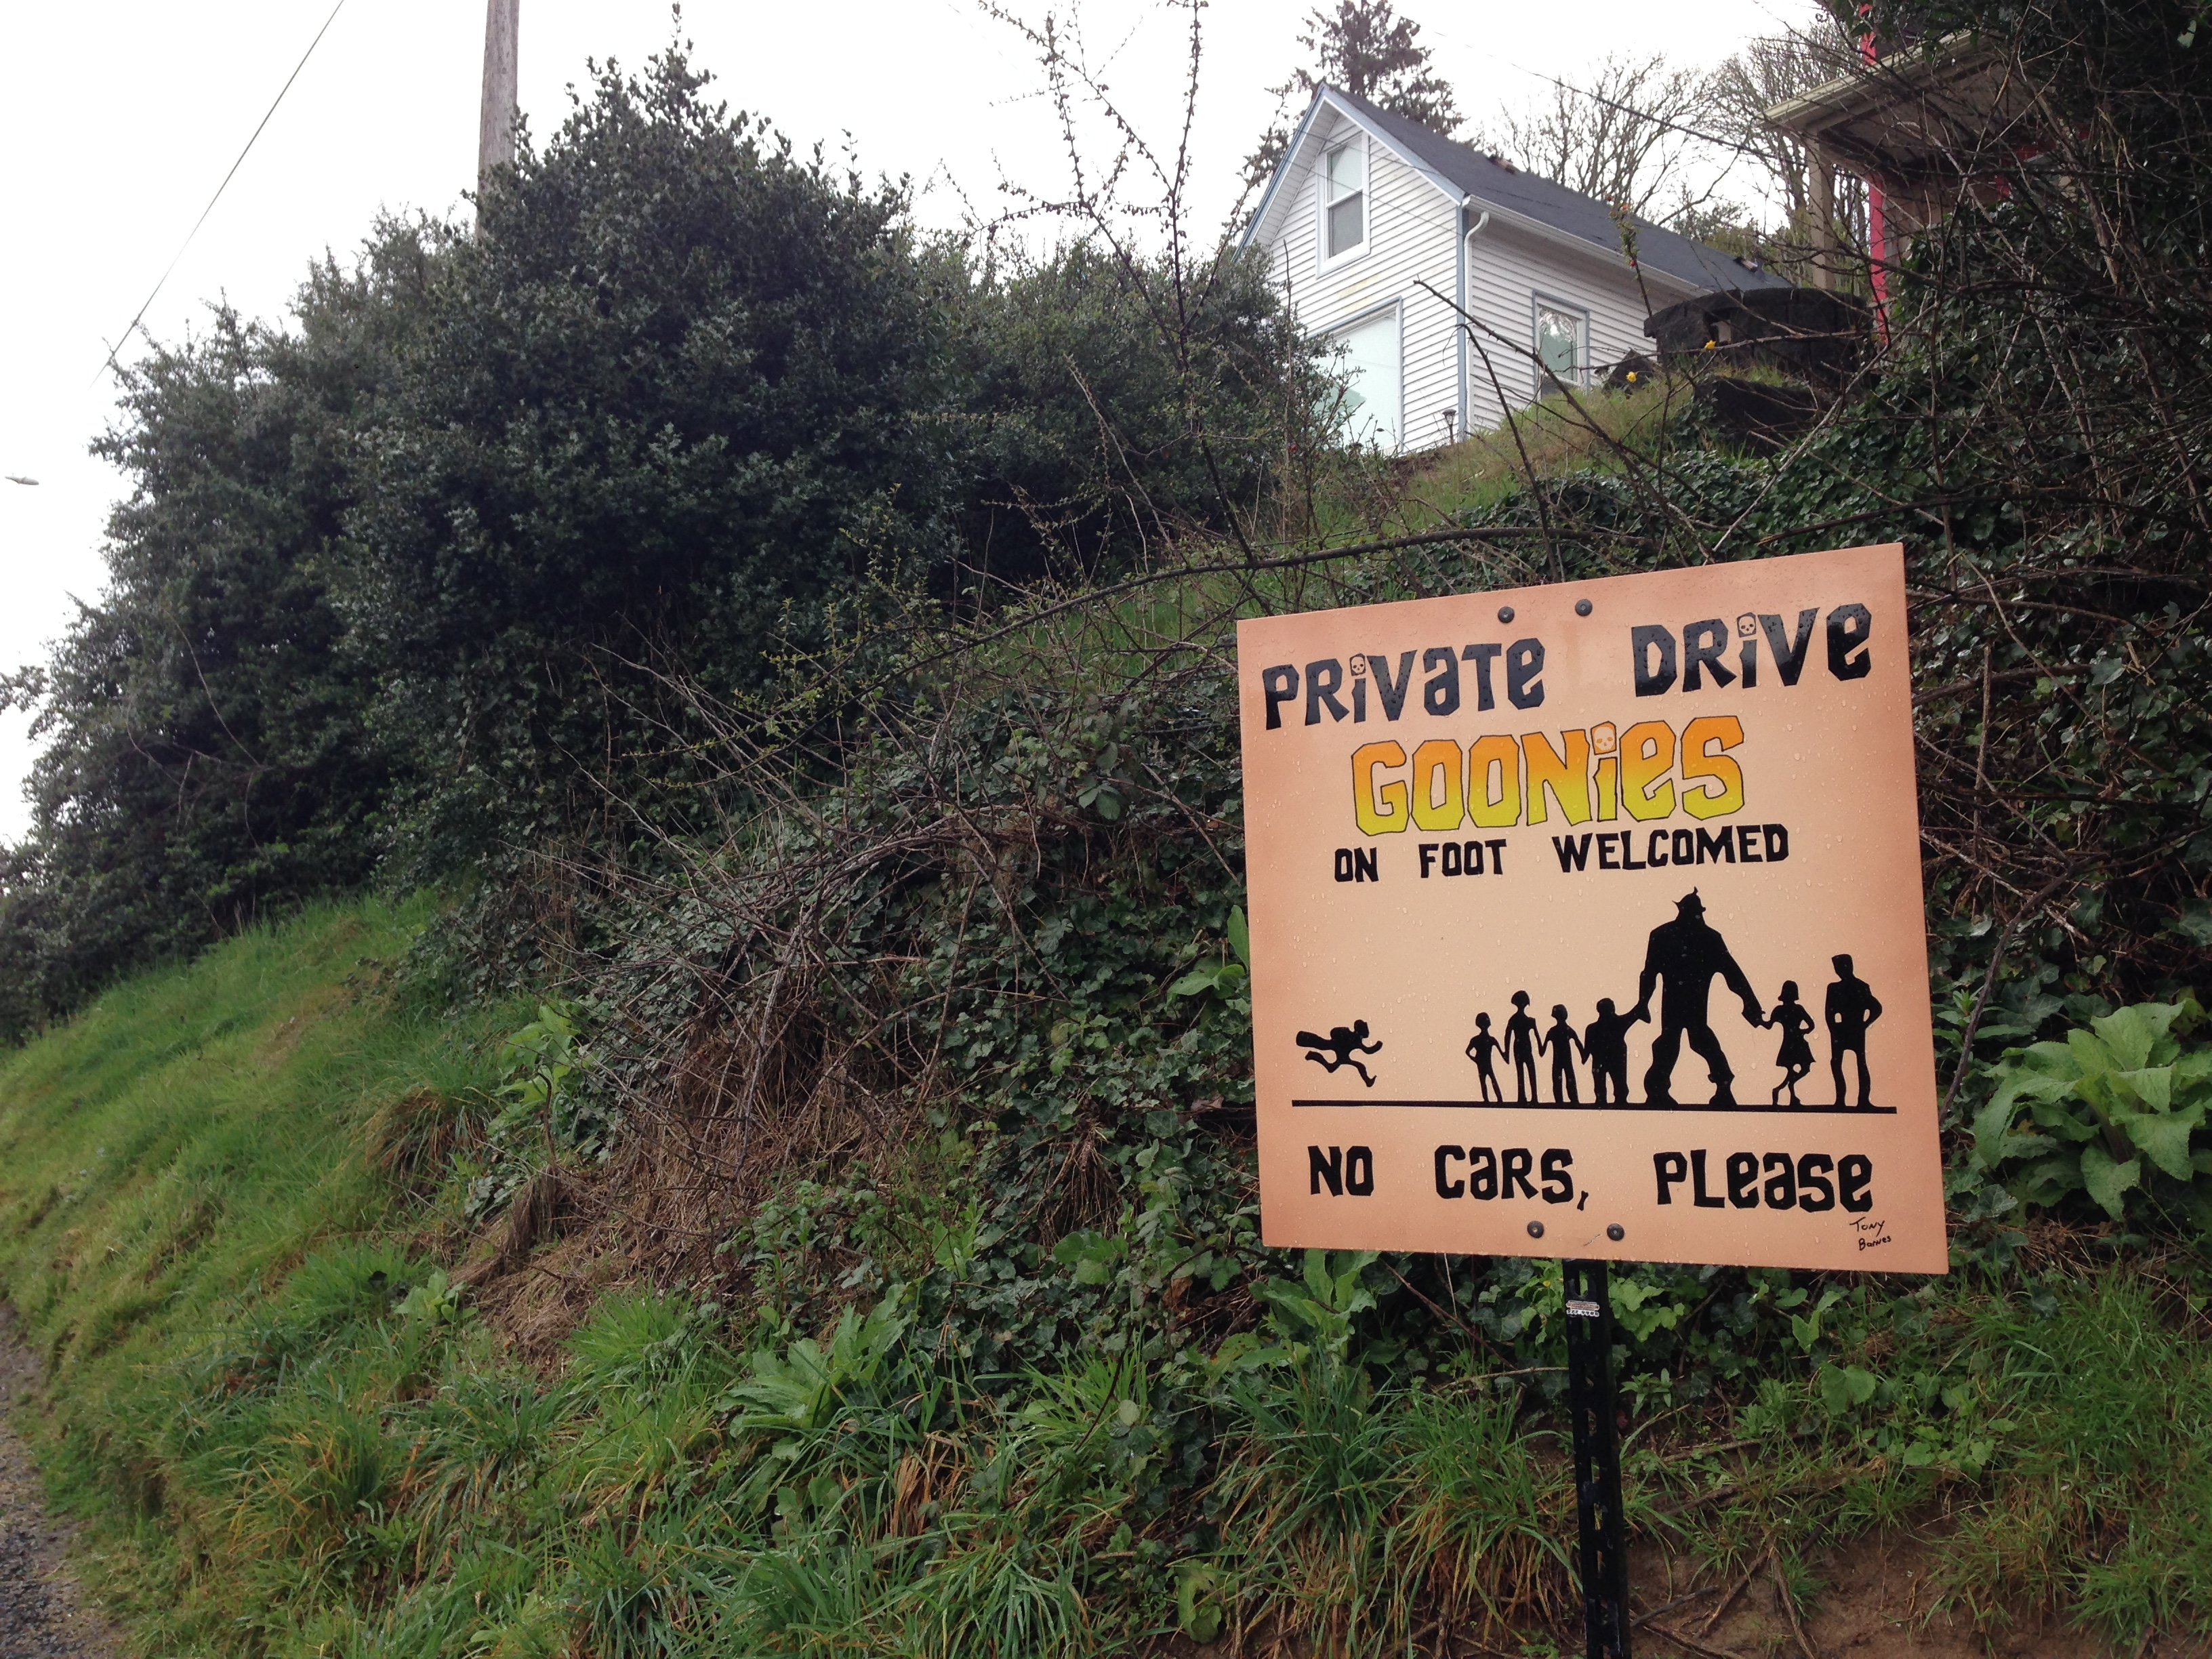 I Visited The Goonies House Because When I Googled U201cAstoriau201d It Was One Of  The First Things To Come Up. But There Are Two Reasons You Should Not Go To  The ...